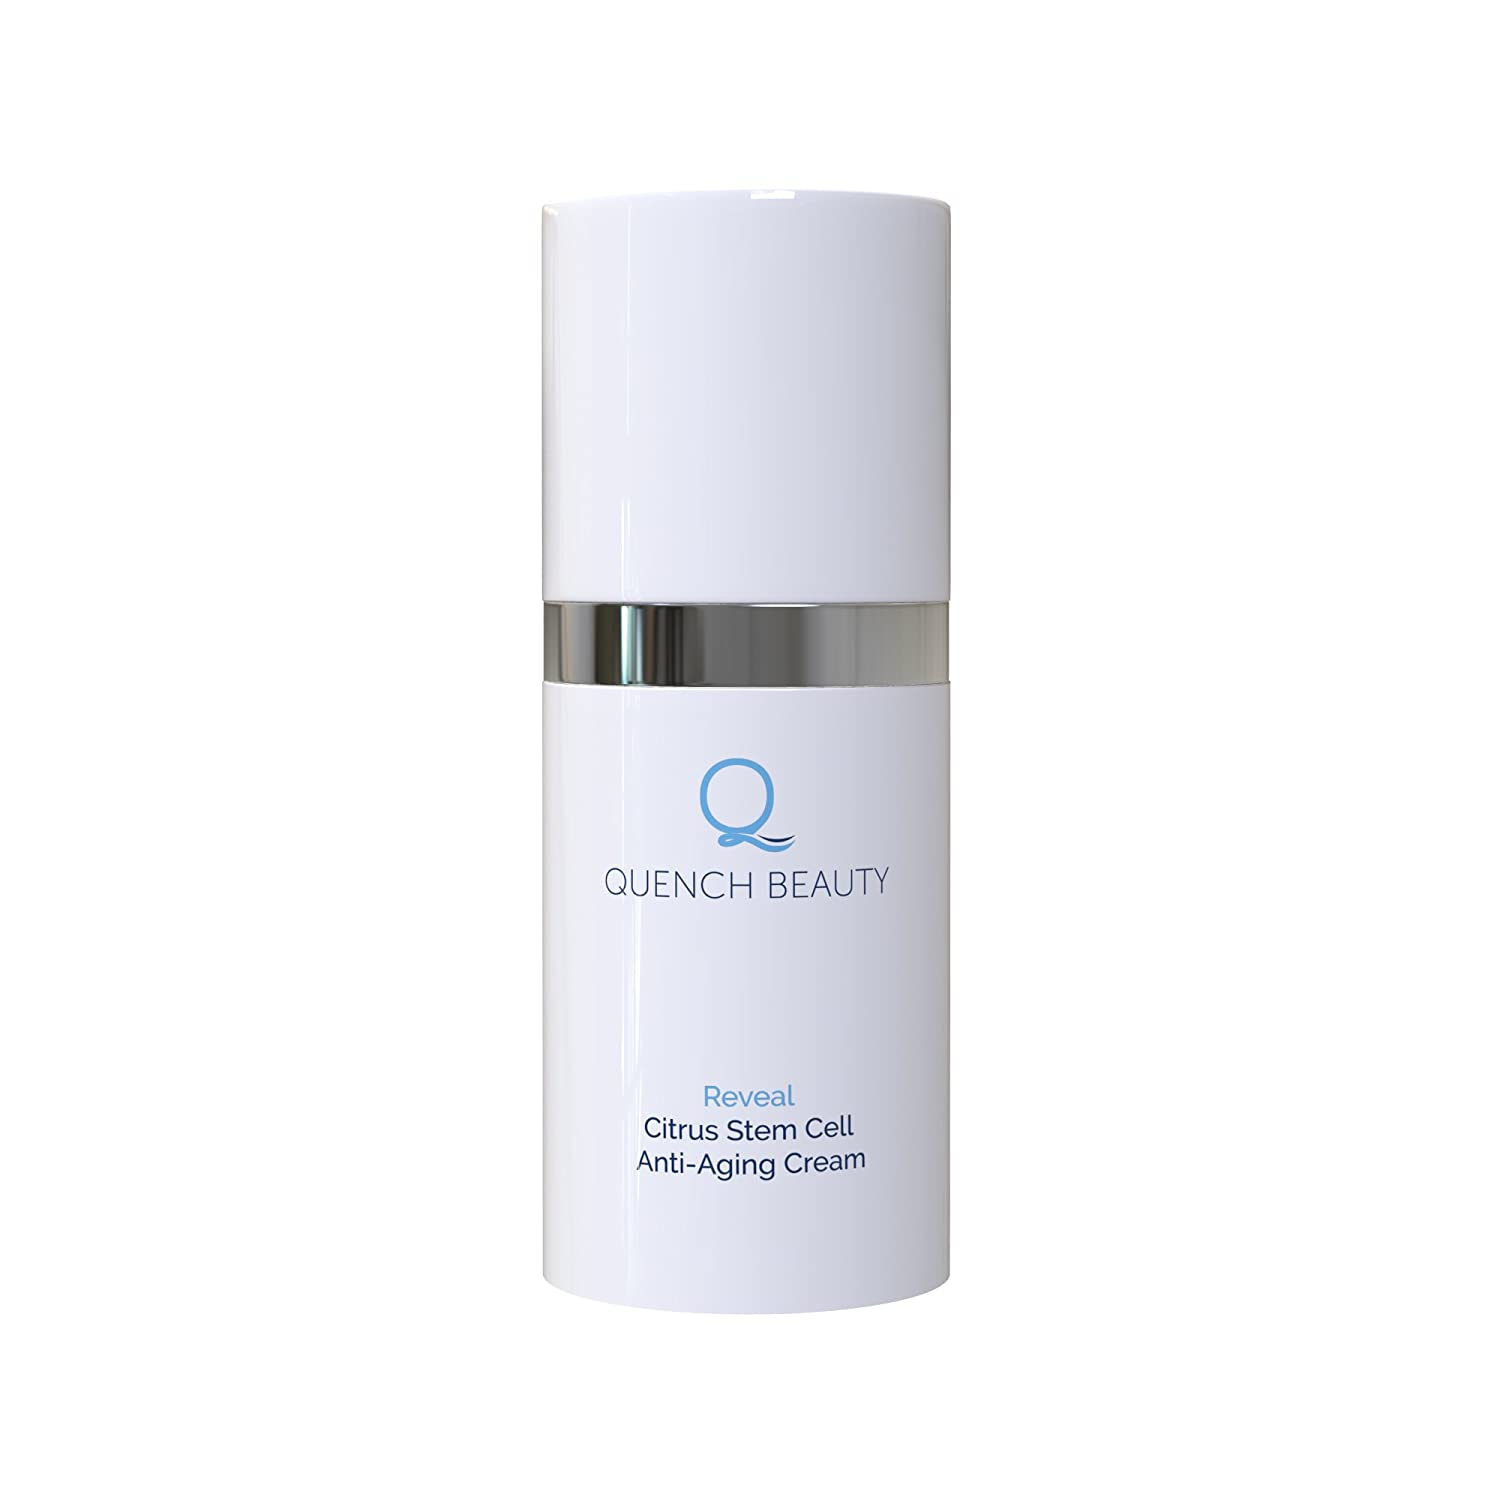 Quench Beauty Products Review